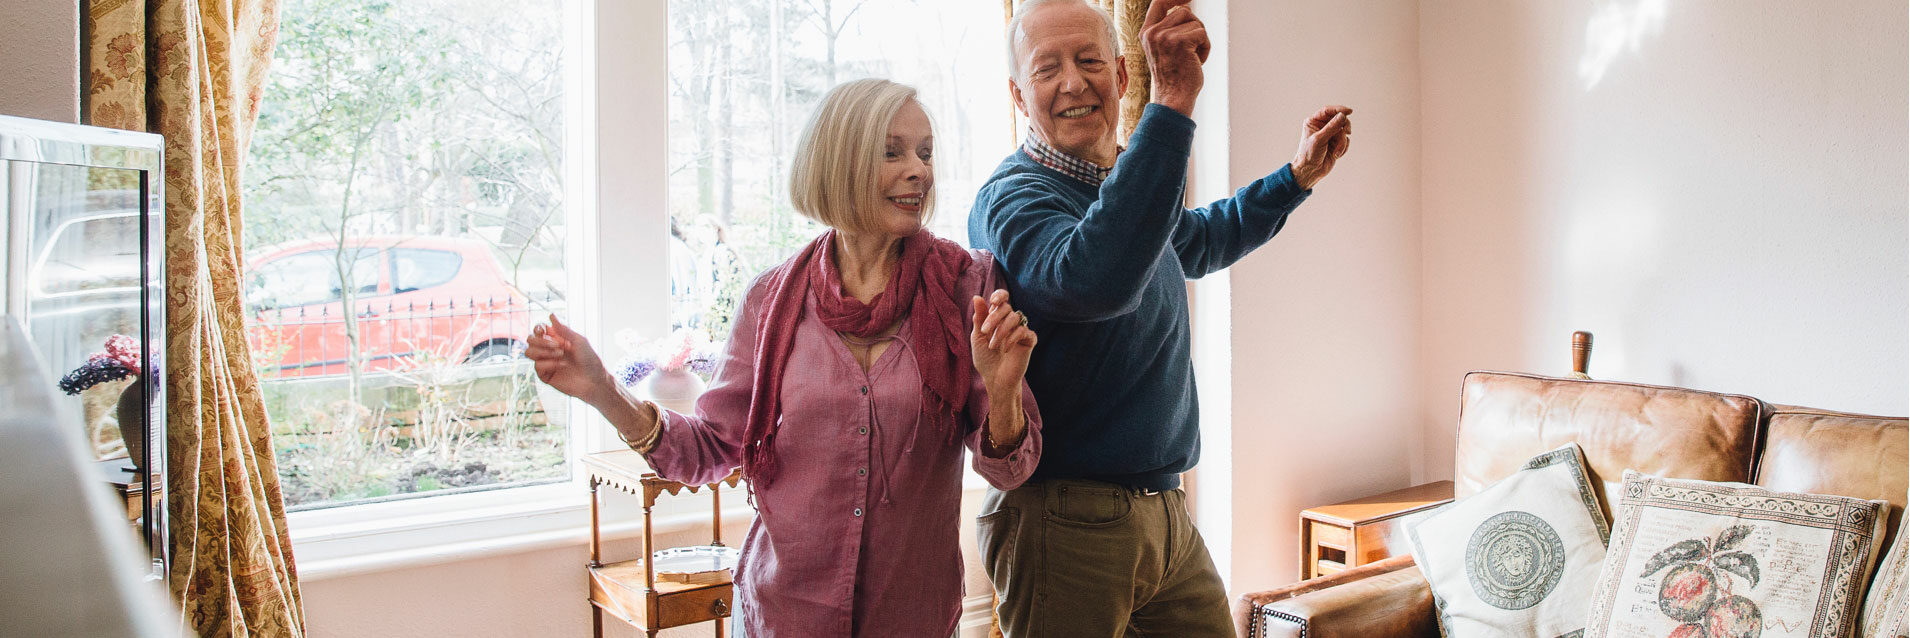 An elderly couple dancing to music in their home